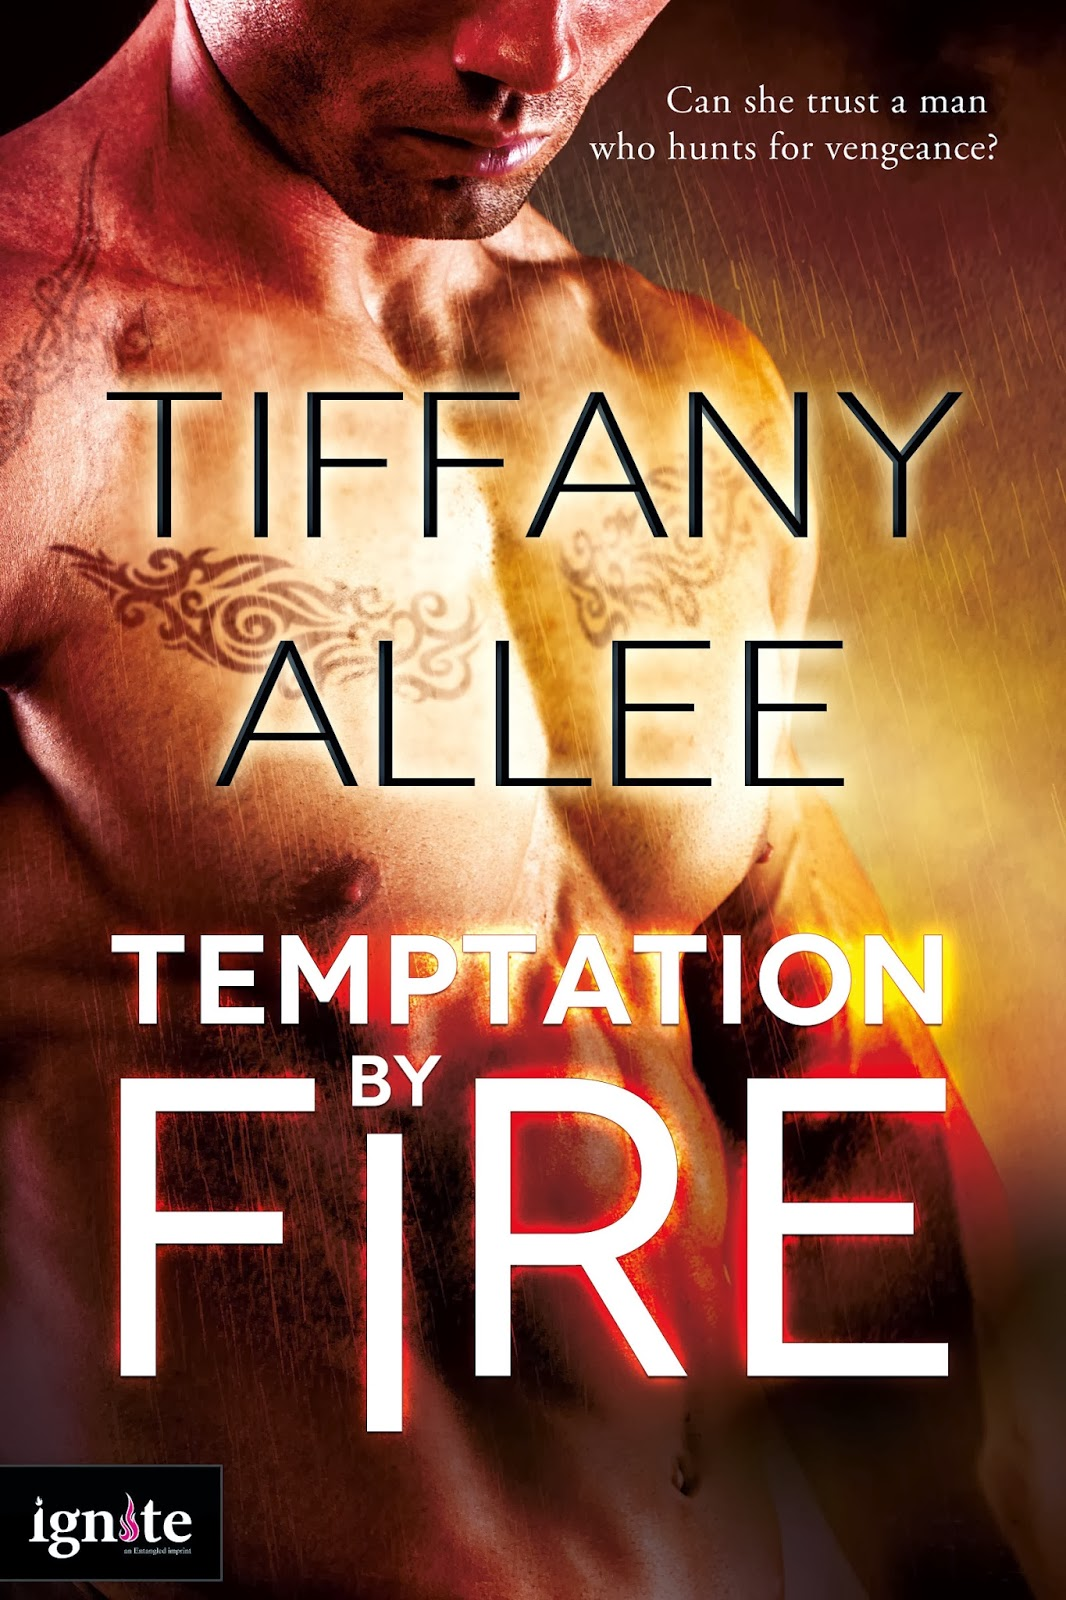 Blog Tour: Guest Post – Temptation by Fire by Tiffany Allee